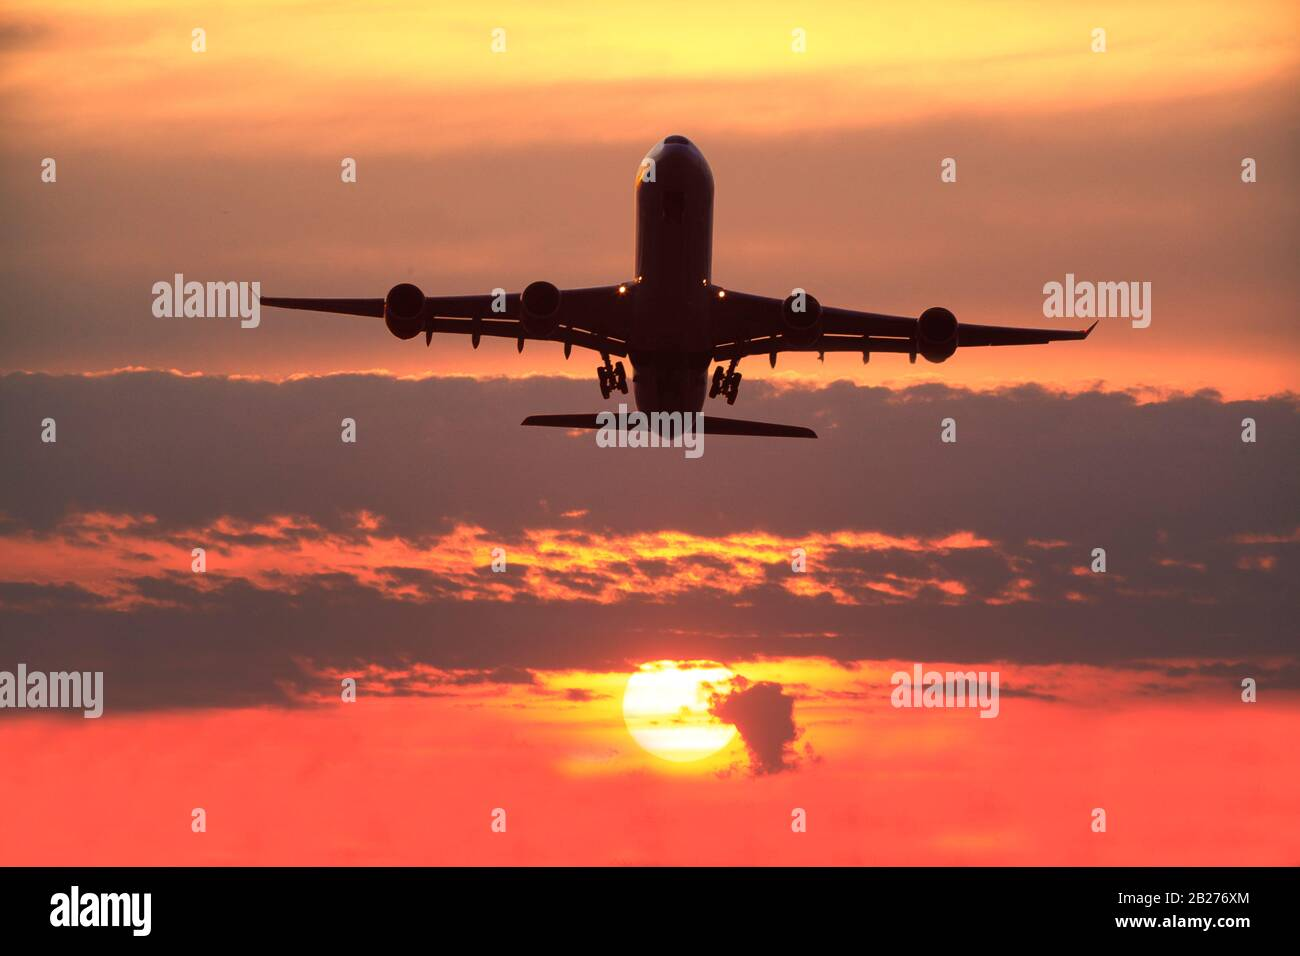 Boeing 747-400 Airliner Take off across a fabulous sunset . Stock Photo